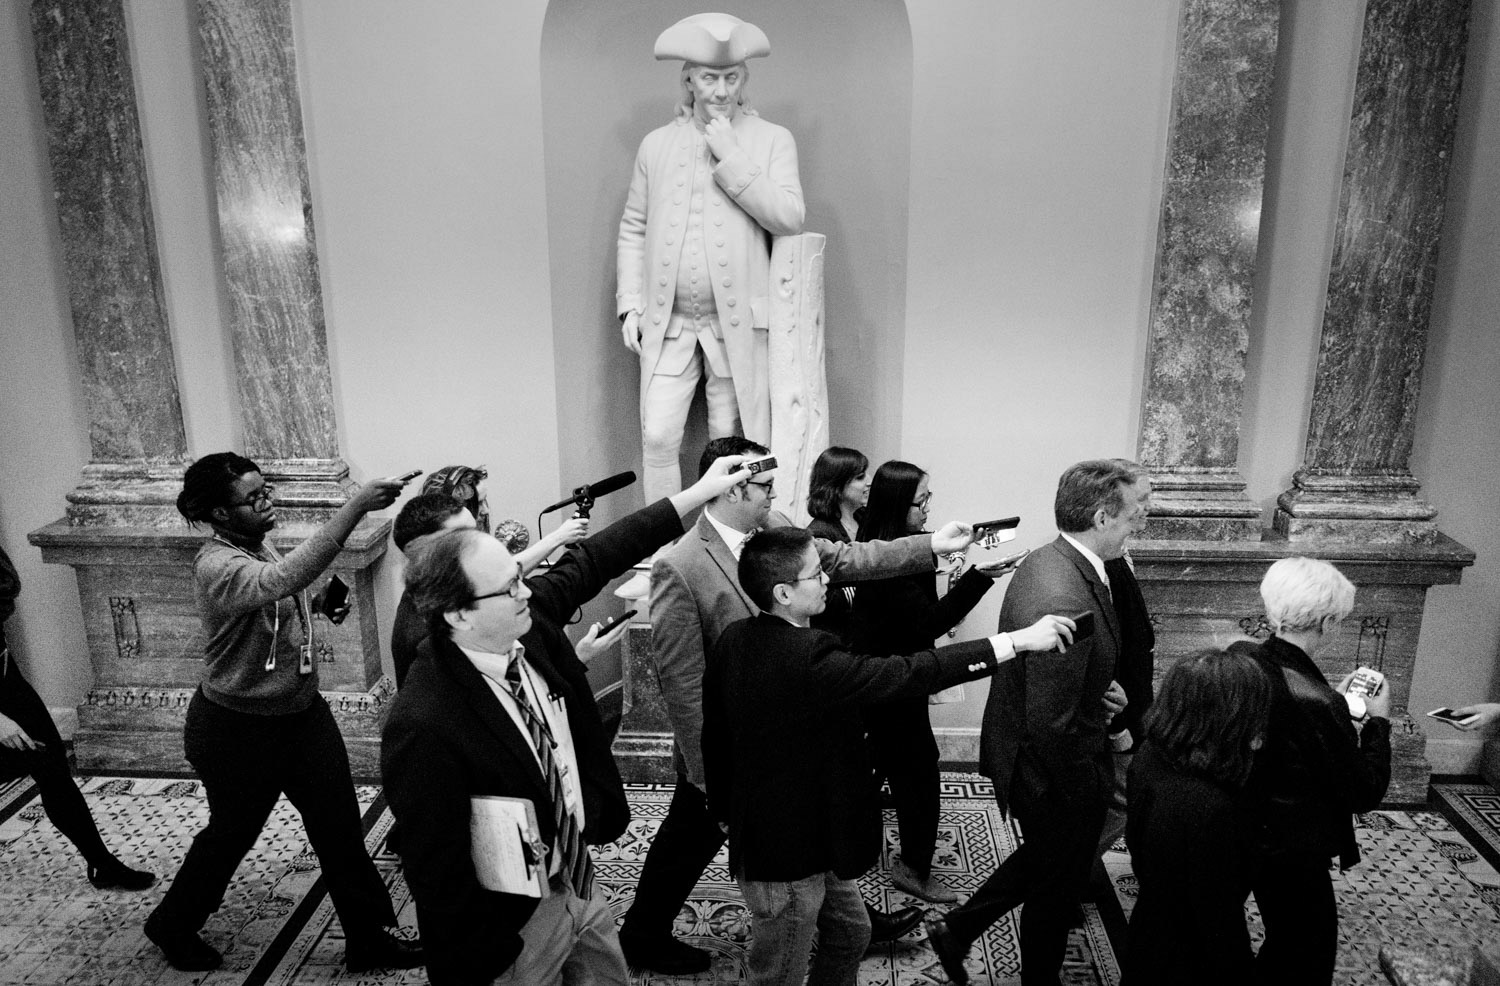 Reporters follow Sensators Jeff Flake (R-AZ.) and Lindsey Graham (R-SC) through the Capitol during a government shutdown in Washington, DC on January 20, 2018.